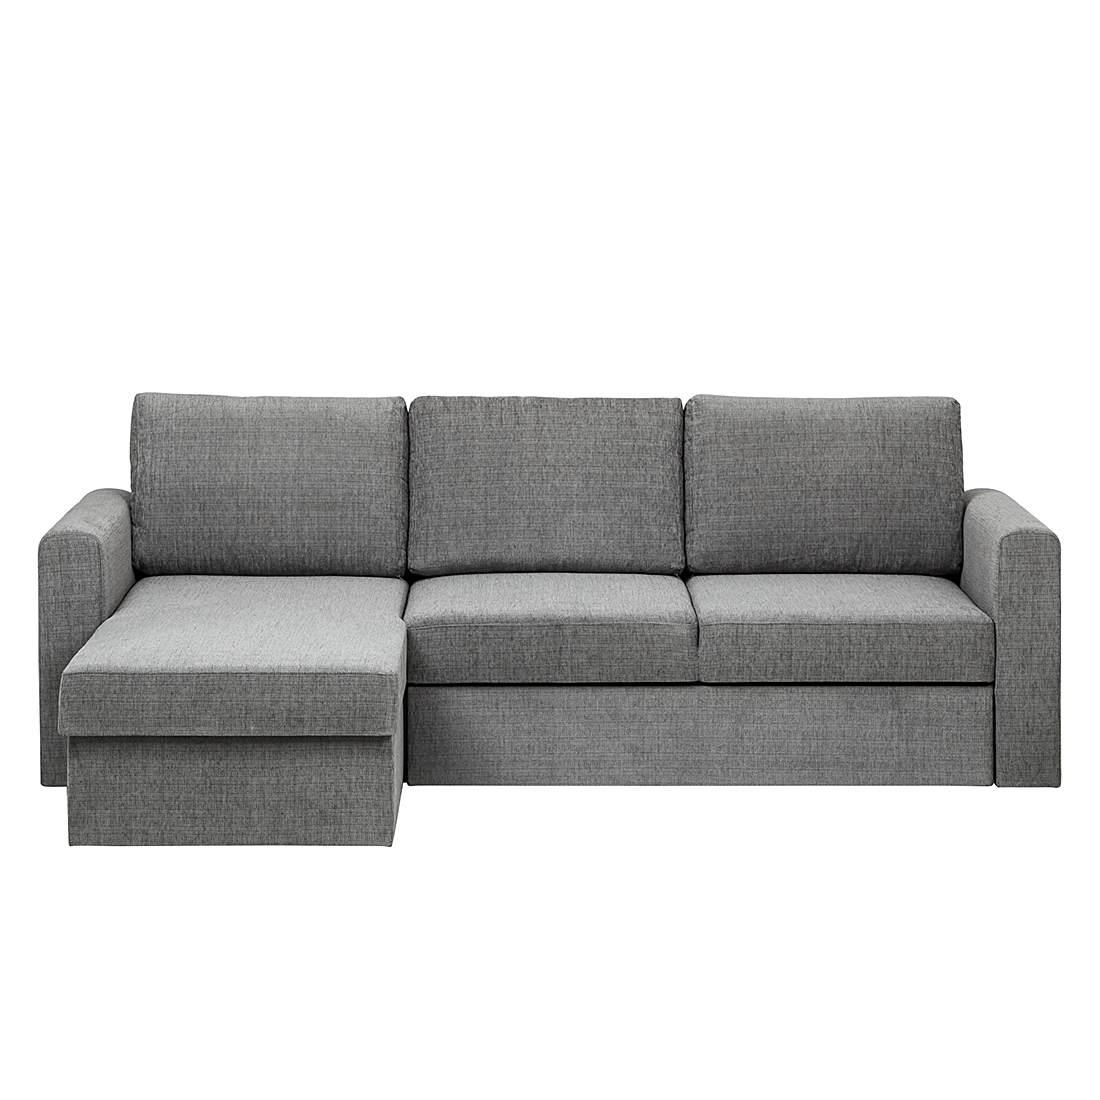 ecksofa stoff grau schlafsofa schlafcouch sofa couch eckcouch g stesofa neu ebay. Black Bedroom Furniture Sets. Home Design Ideas